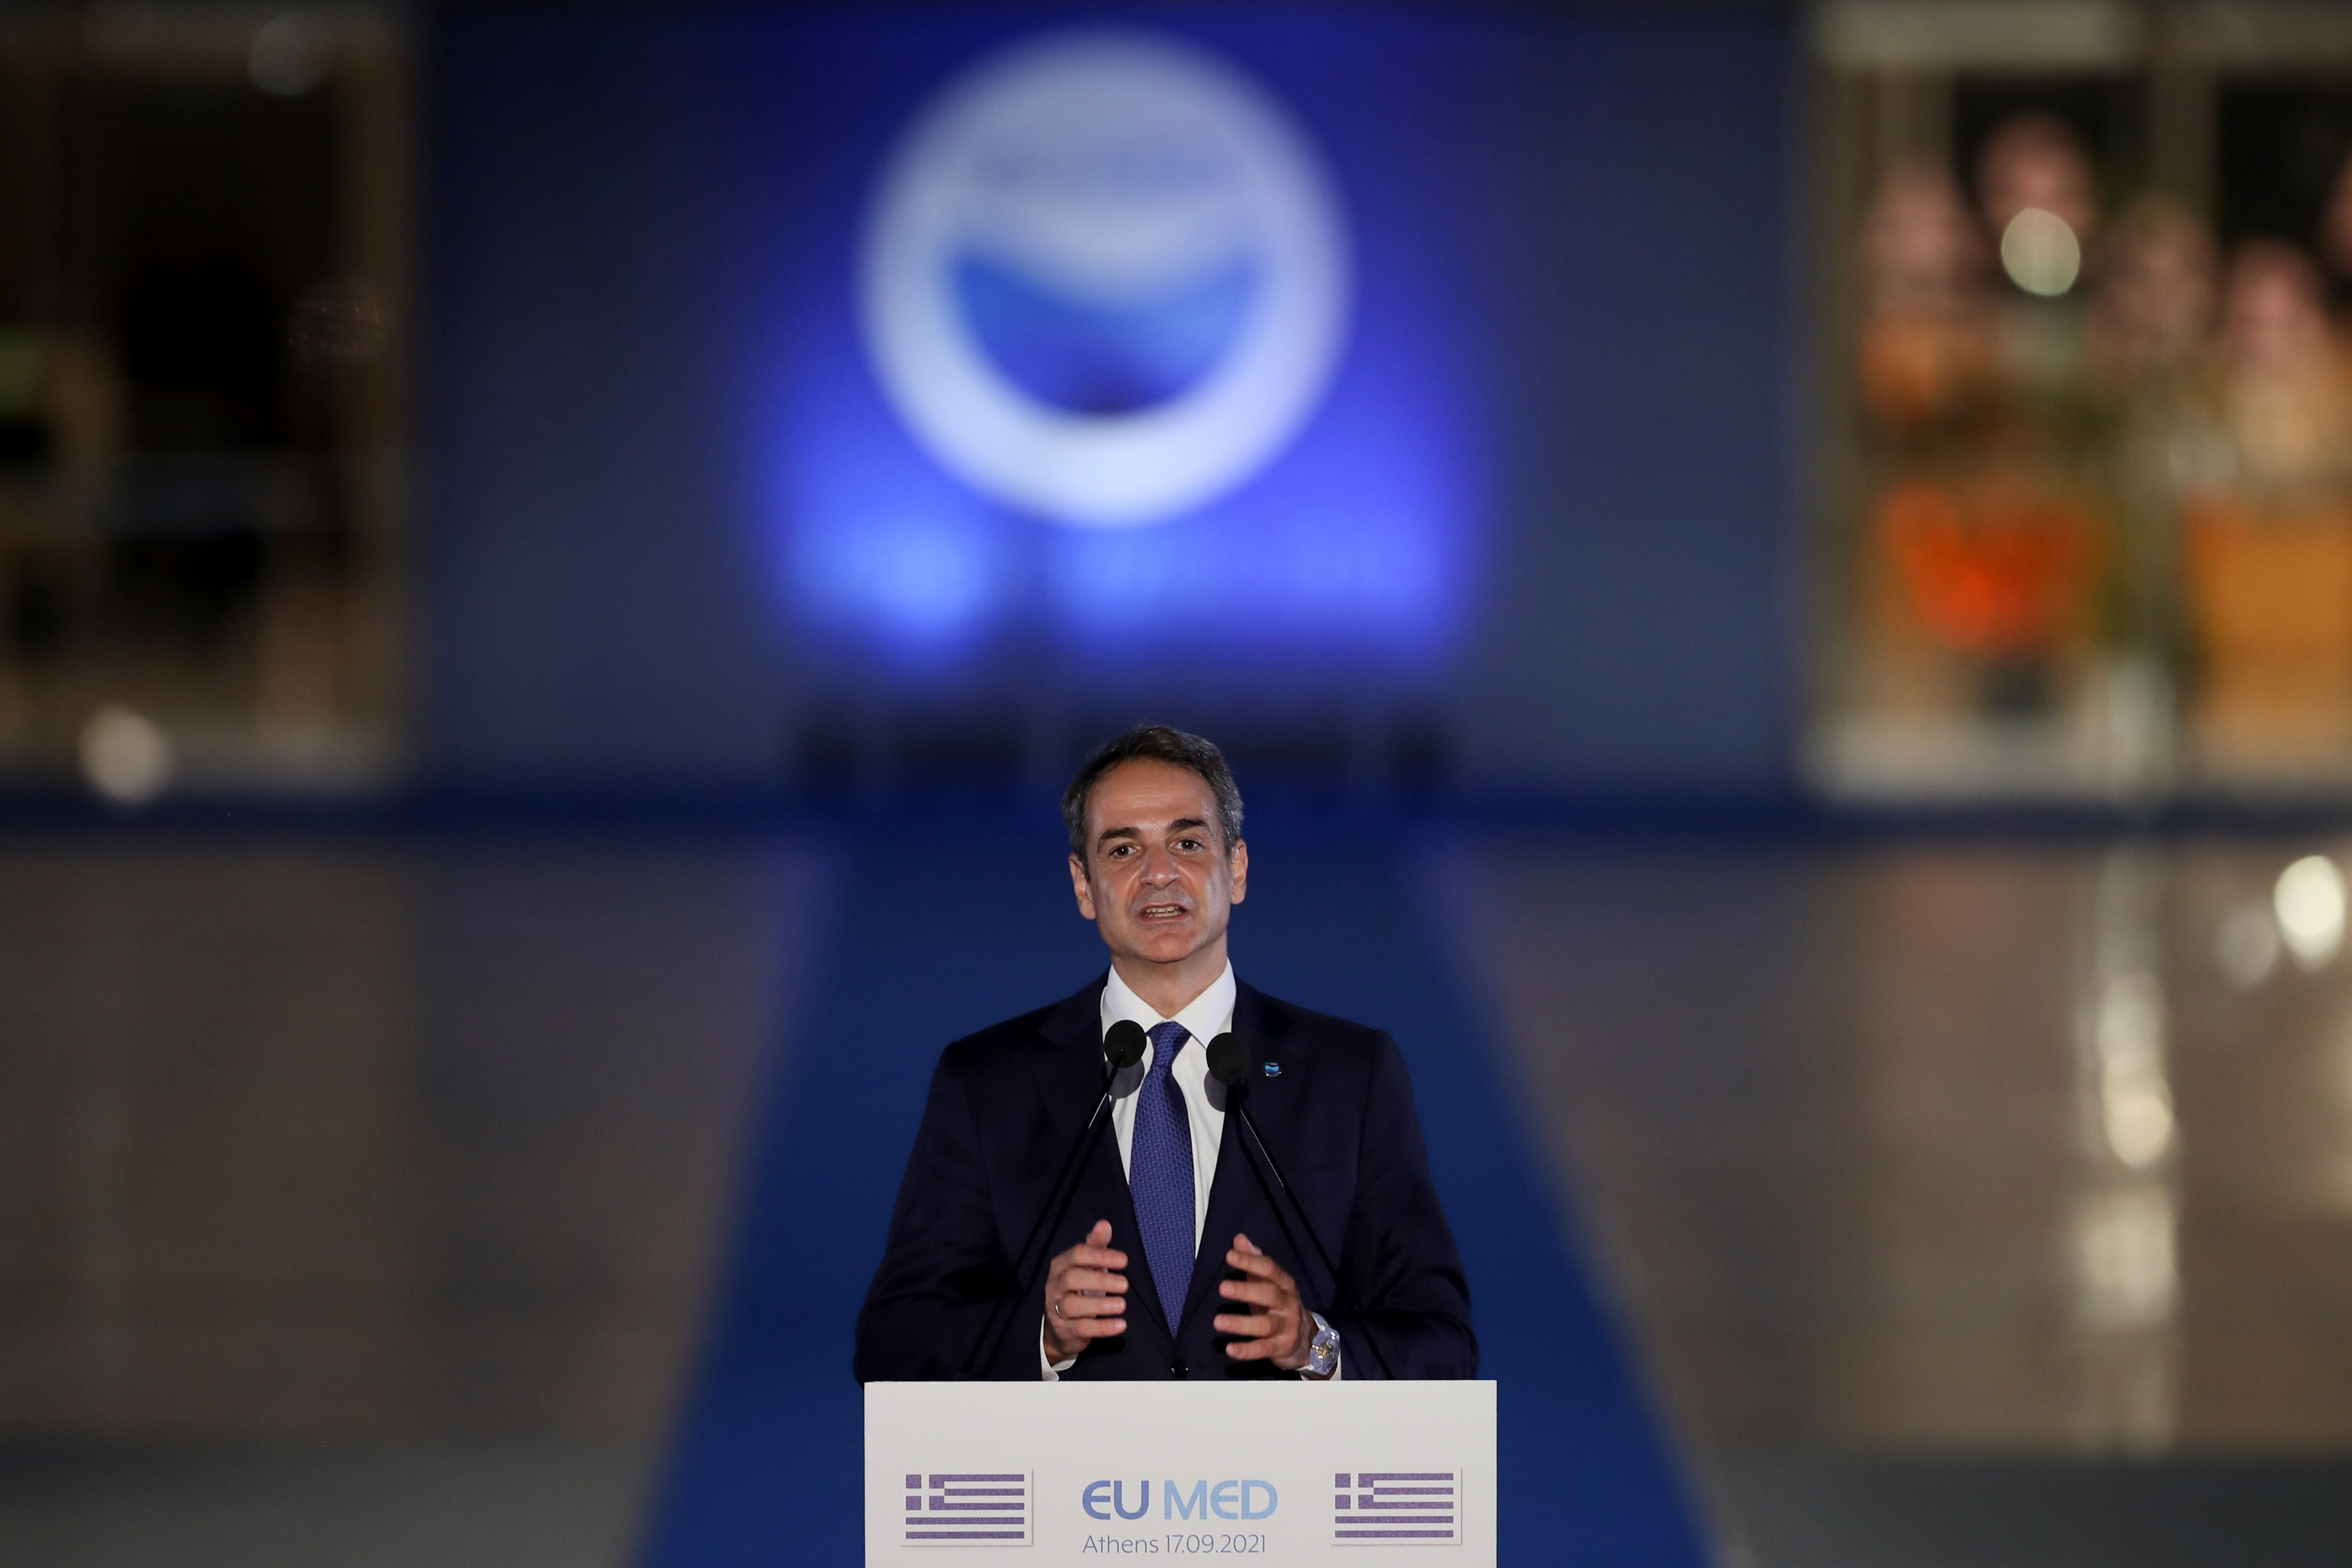 Greek Prime Minister Kyriakos Mitsotakis delivers a statement during the 8th MED7 Mediterranean countries summit, in Athens, Greece, September 17, 2021. REUTERS/Costas Baltas